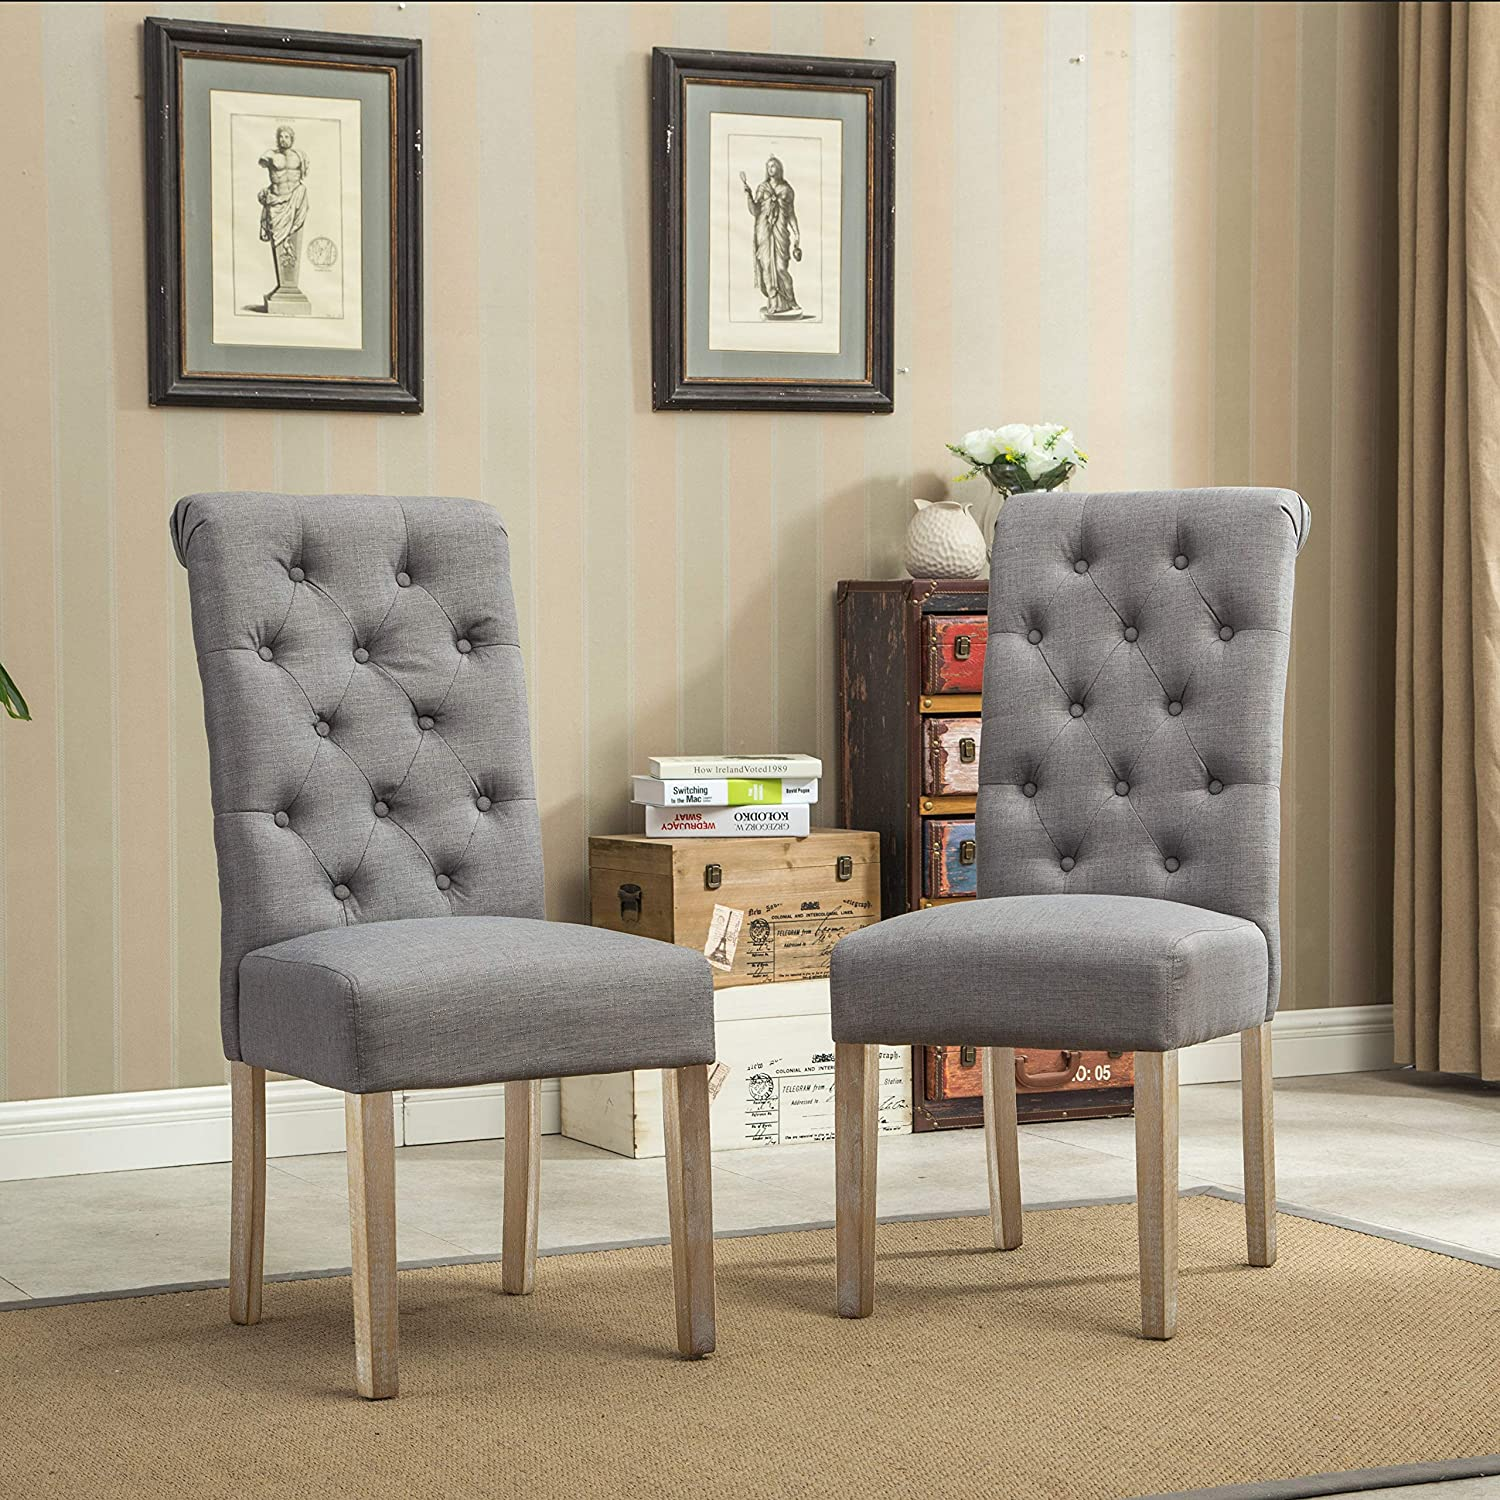 Roundhill Furniture Habit Grey Solid Wood Tufted Parsons Dining Chair Set Of 2 Gray Amazon Ca Home Kitchen